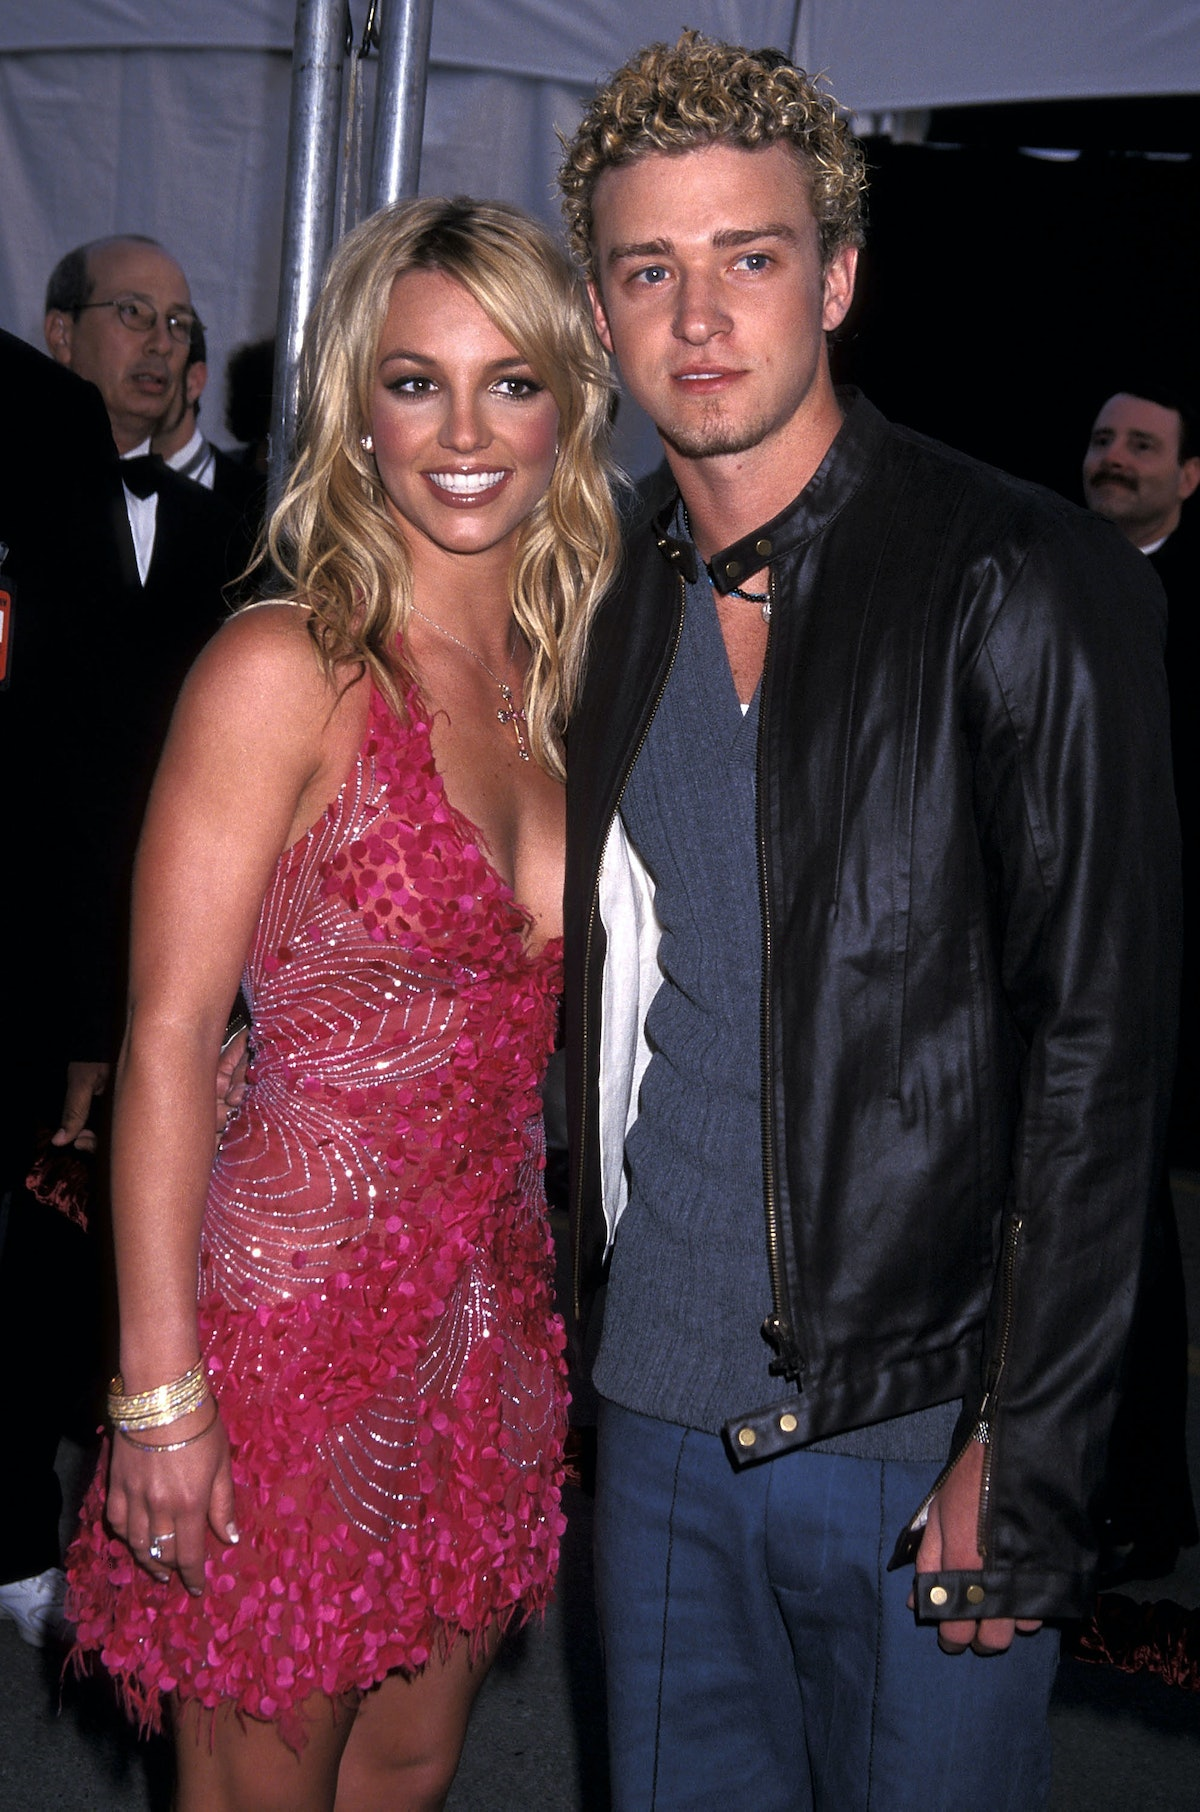 Singer Britney Spears and singer Justin Timberlake of N'Sync attend the 29th Annual American Music A...